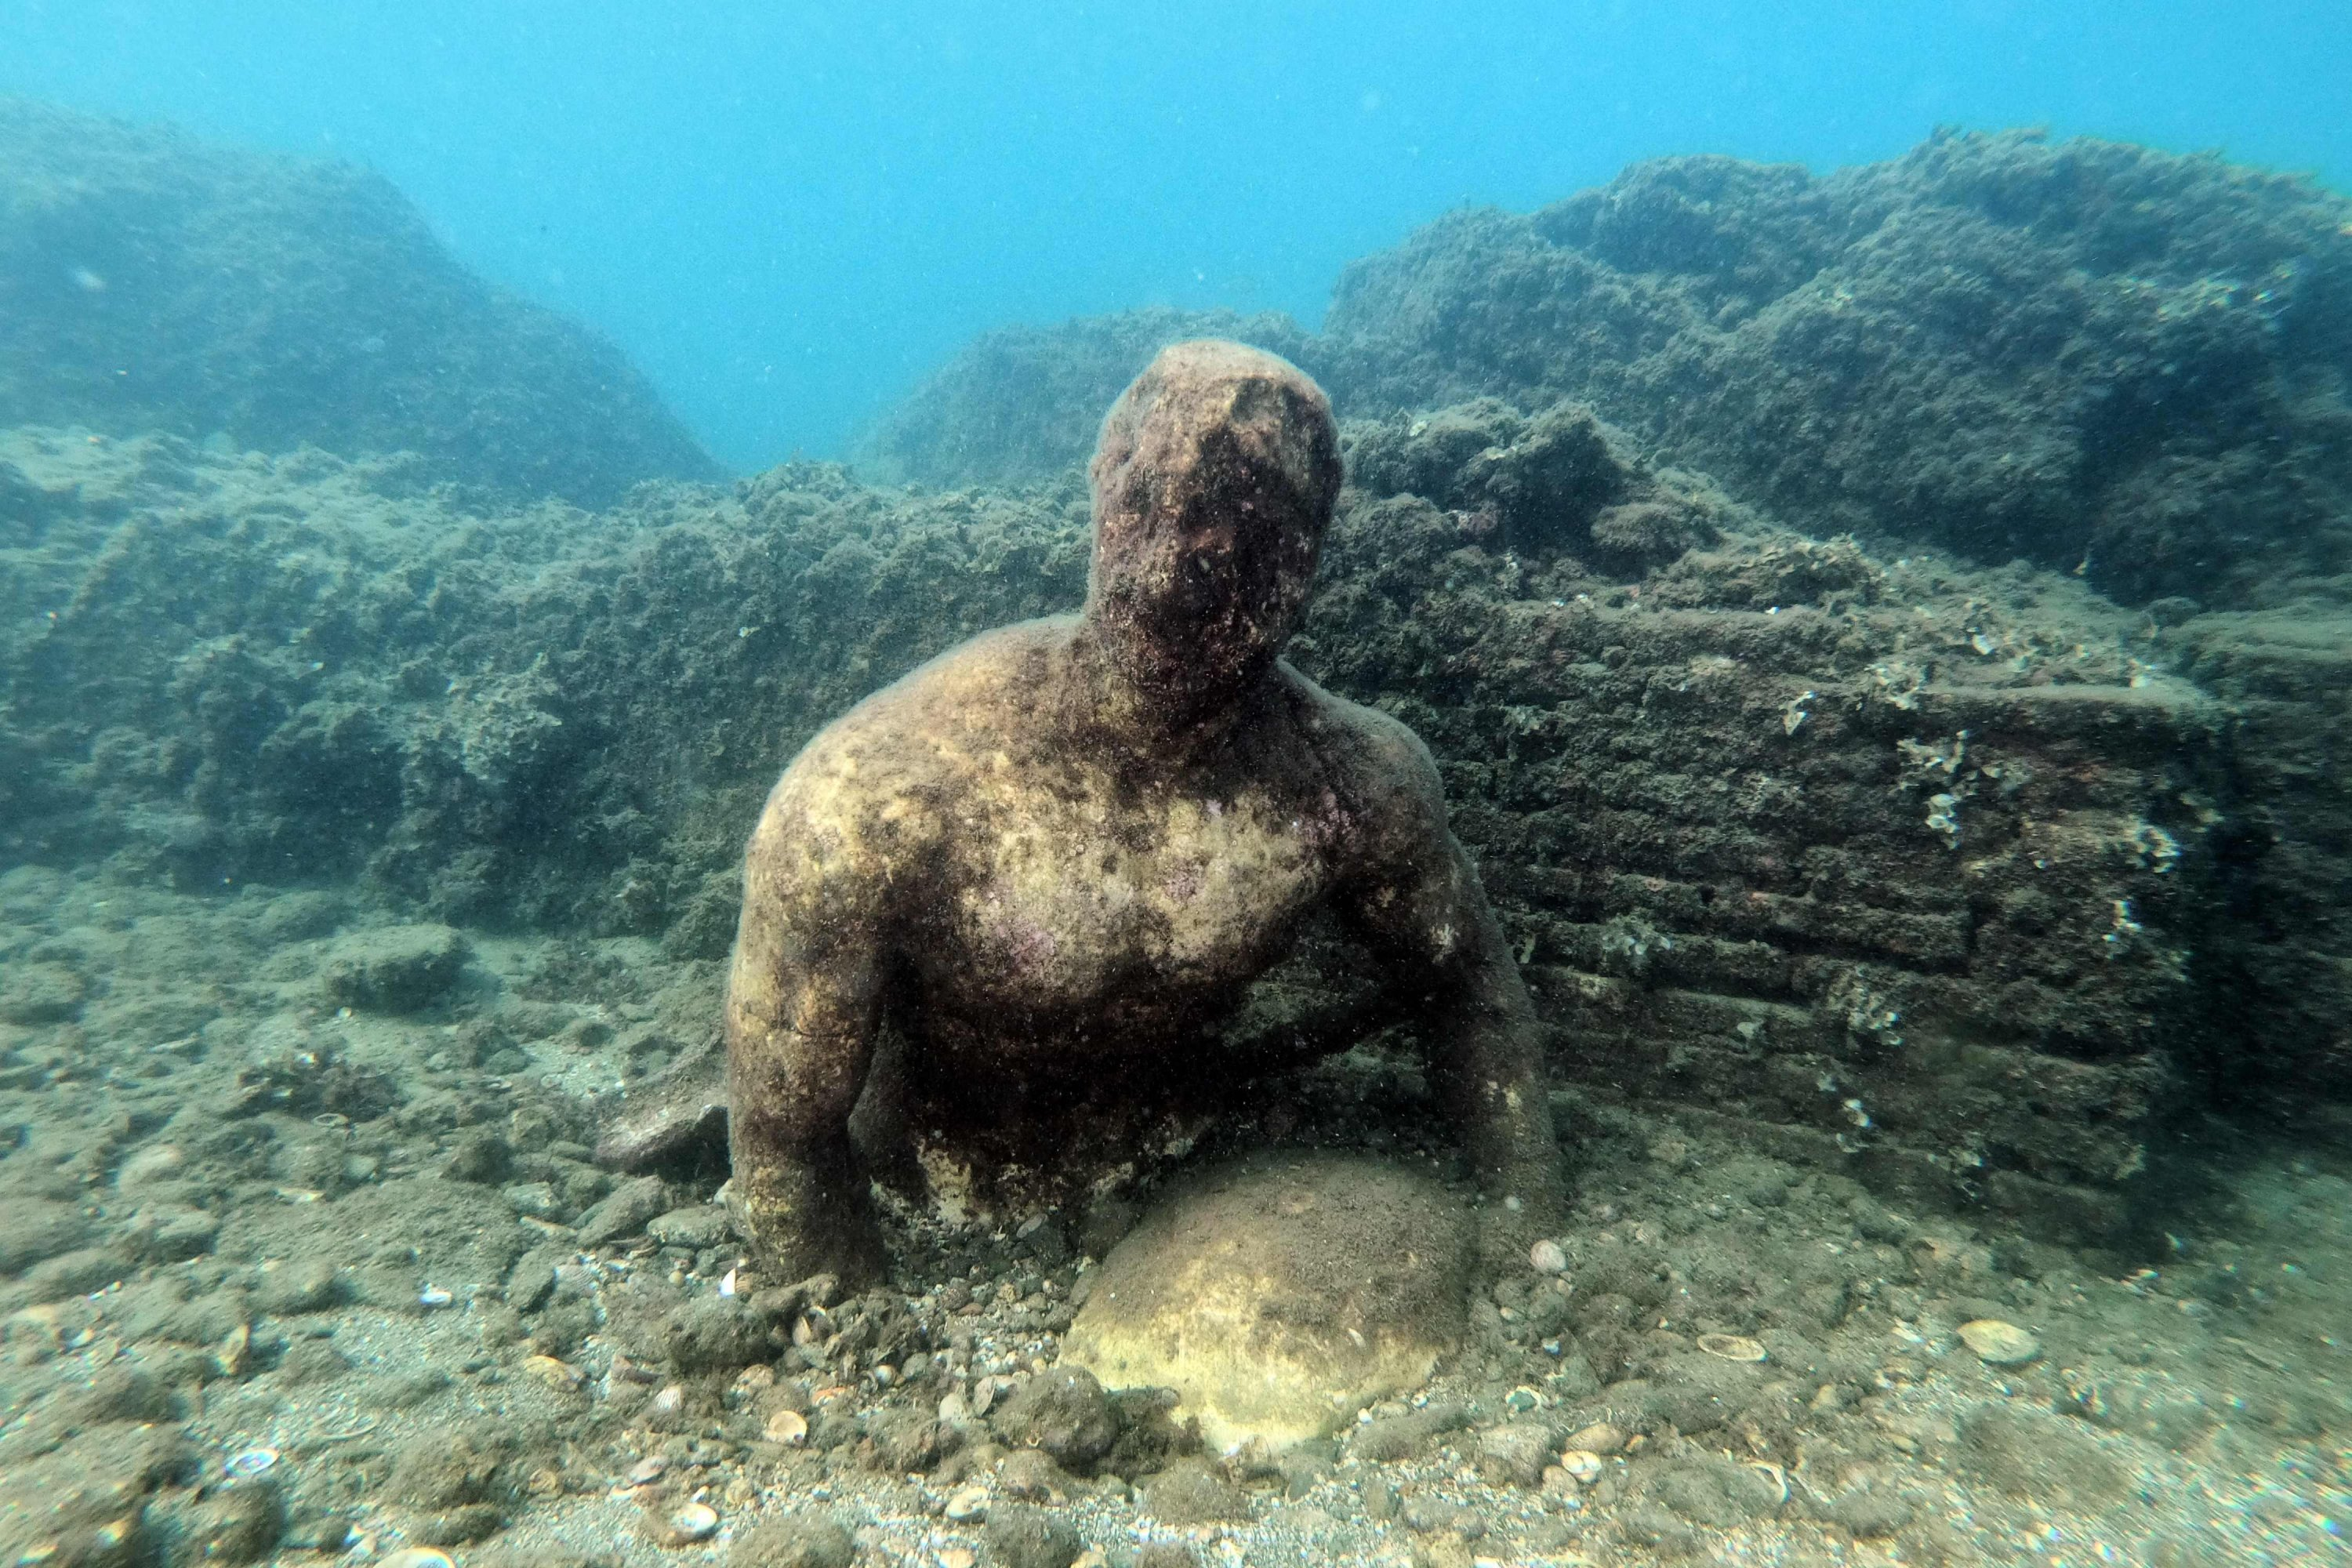 A copy of the original statue preserved at the Museum of Baiae, in the submerged ancient Roman city of Baiae, Pozzuoli near Naples, Italy, Aug. 18, 2021. (AFP Photo)